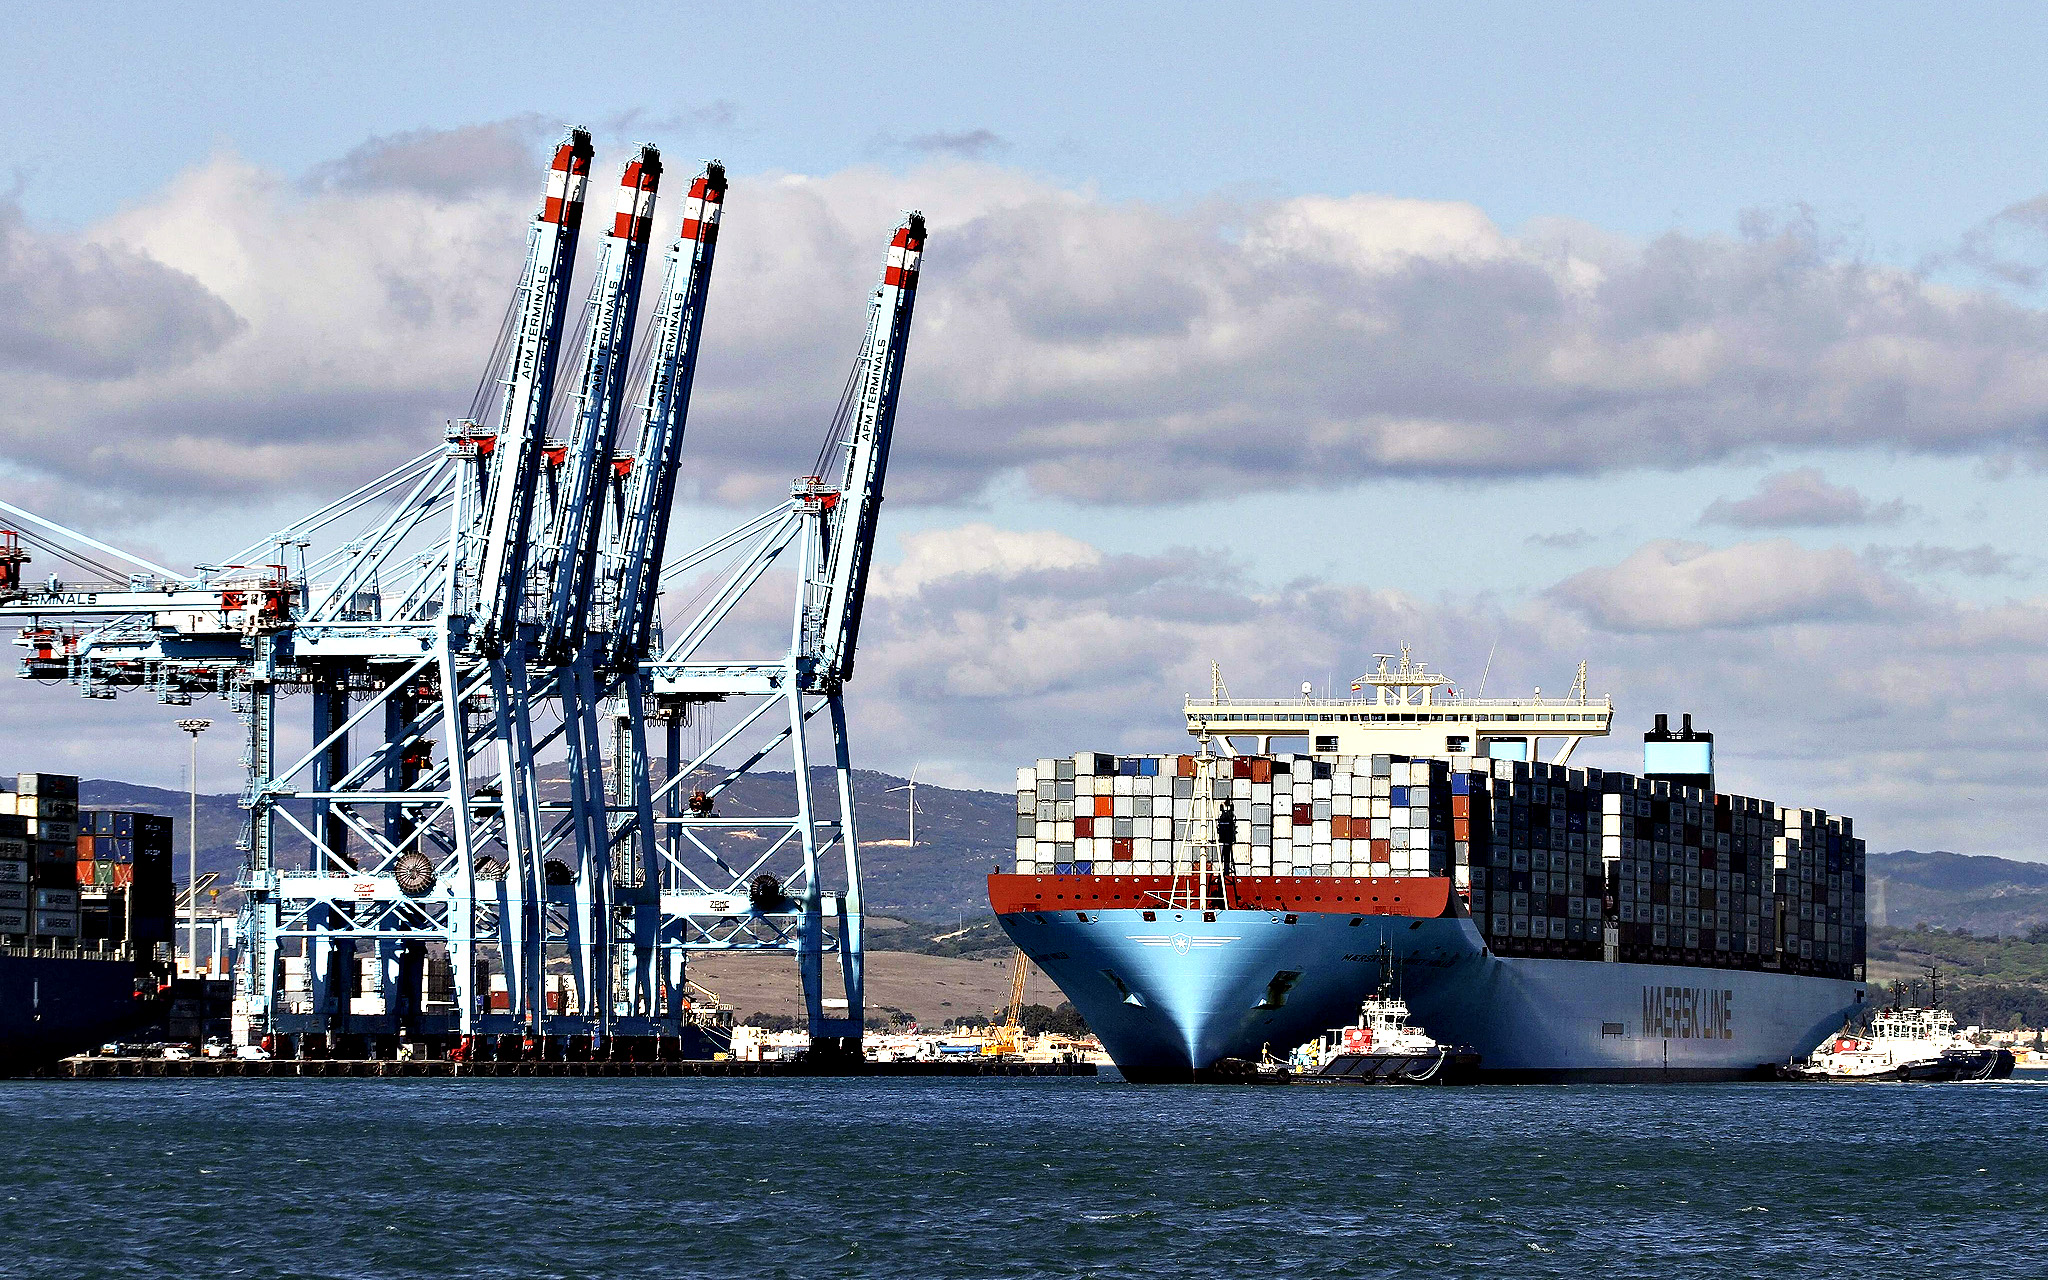 The world's biggest container ship, 'Maersk MacKinney Moller', arrives at Algeciras' harbour in Algeciras, Cadiz province, Andalusia, southern Spain, 05 November 2013. 'Maersk MacKinney Moller' made an operative stop at APM terminal in Algeciras port.